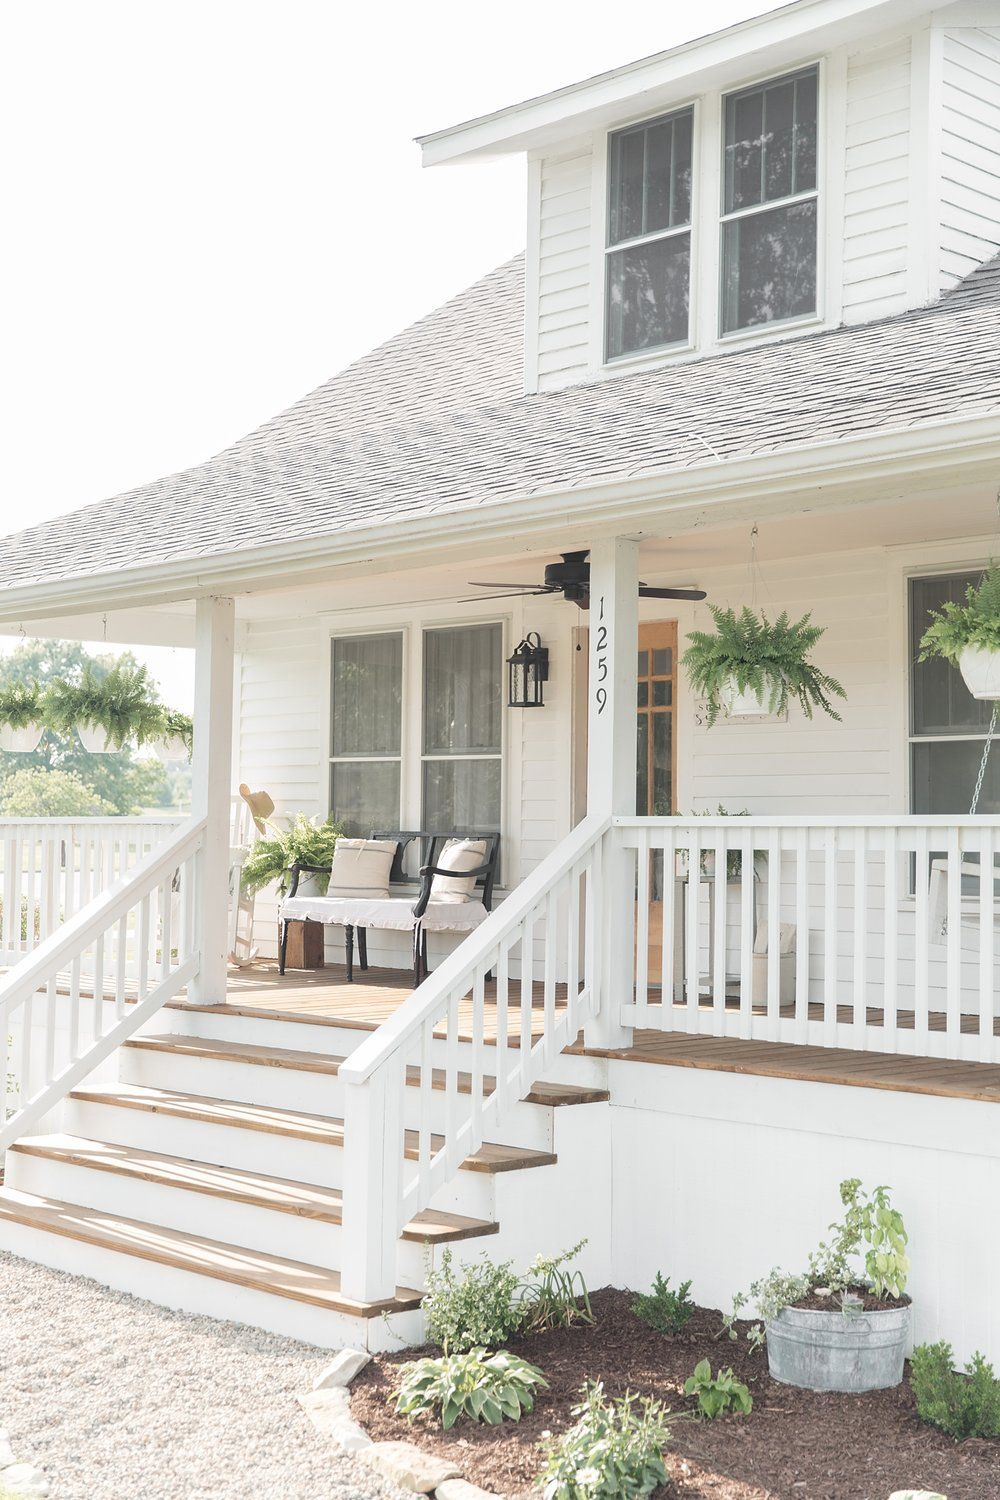 I've partnered up with Lowe's Home Improvement to completely transform the outdated exterior of our nearly 100 year old home. I don't know if I have ever been more excited to publish a post than this one right here! I can't believe the difference this project has made for the curb appeal o